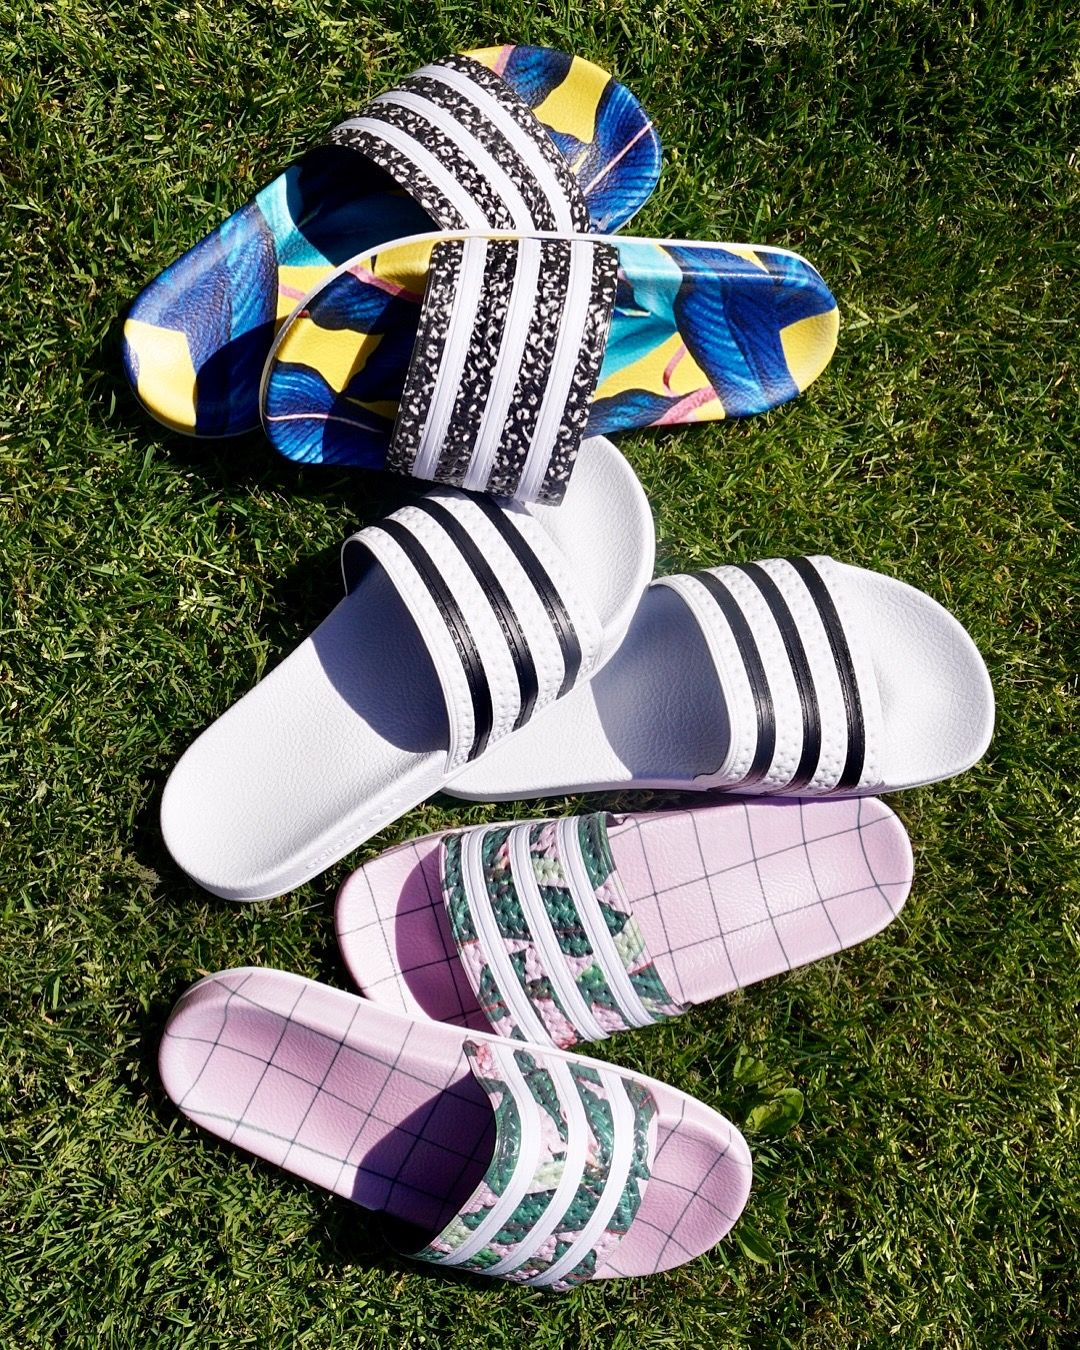 a lo largo Agotar Renacimiento  Slide in to Summer | adidas adilettes | Slides shoes adidas, Womens fashion  shoes, Trending sandals